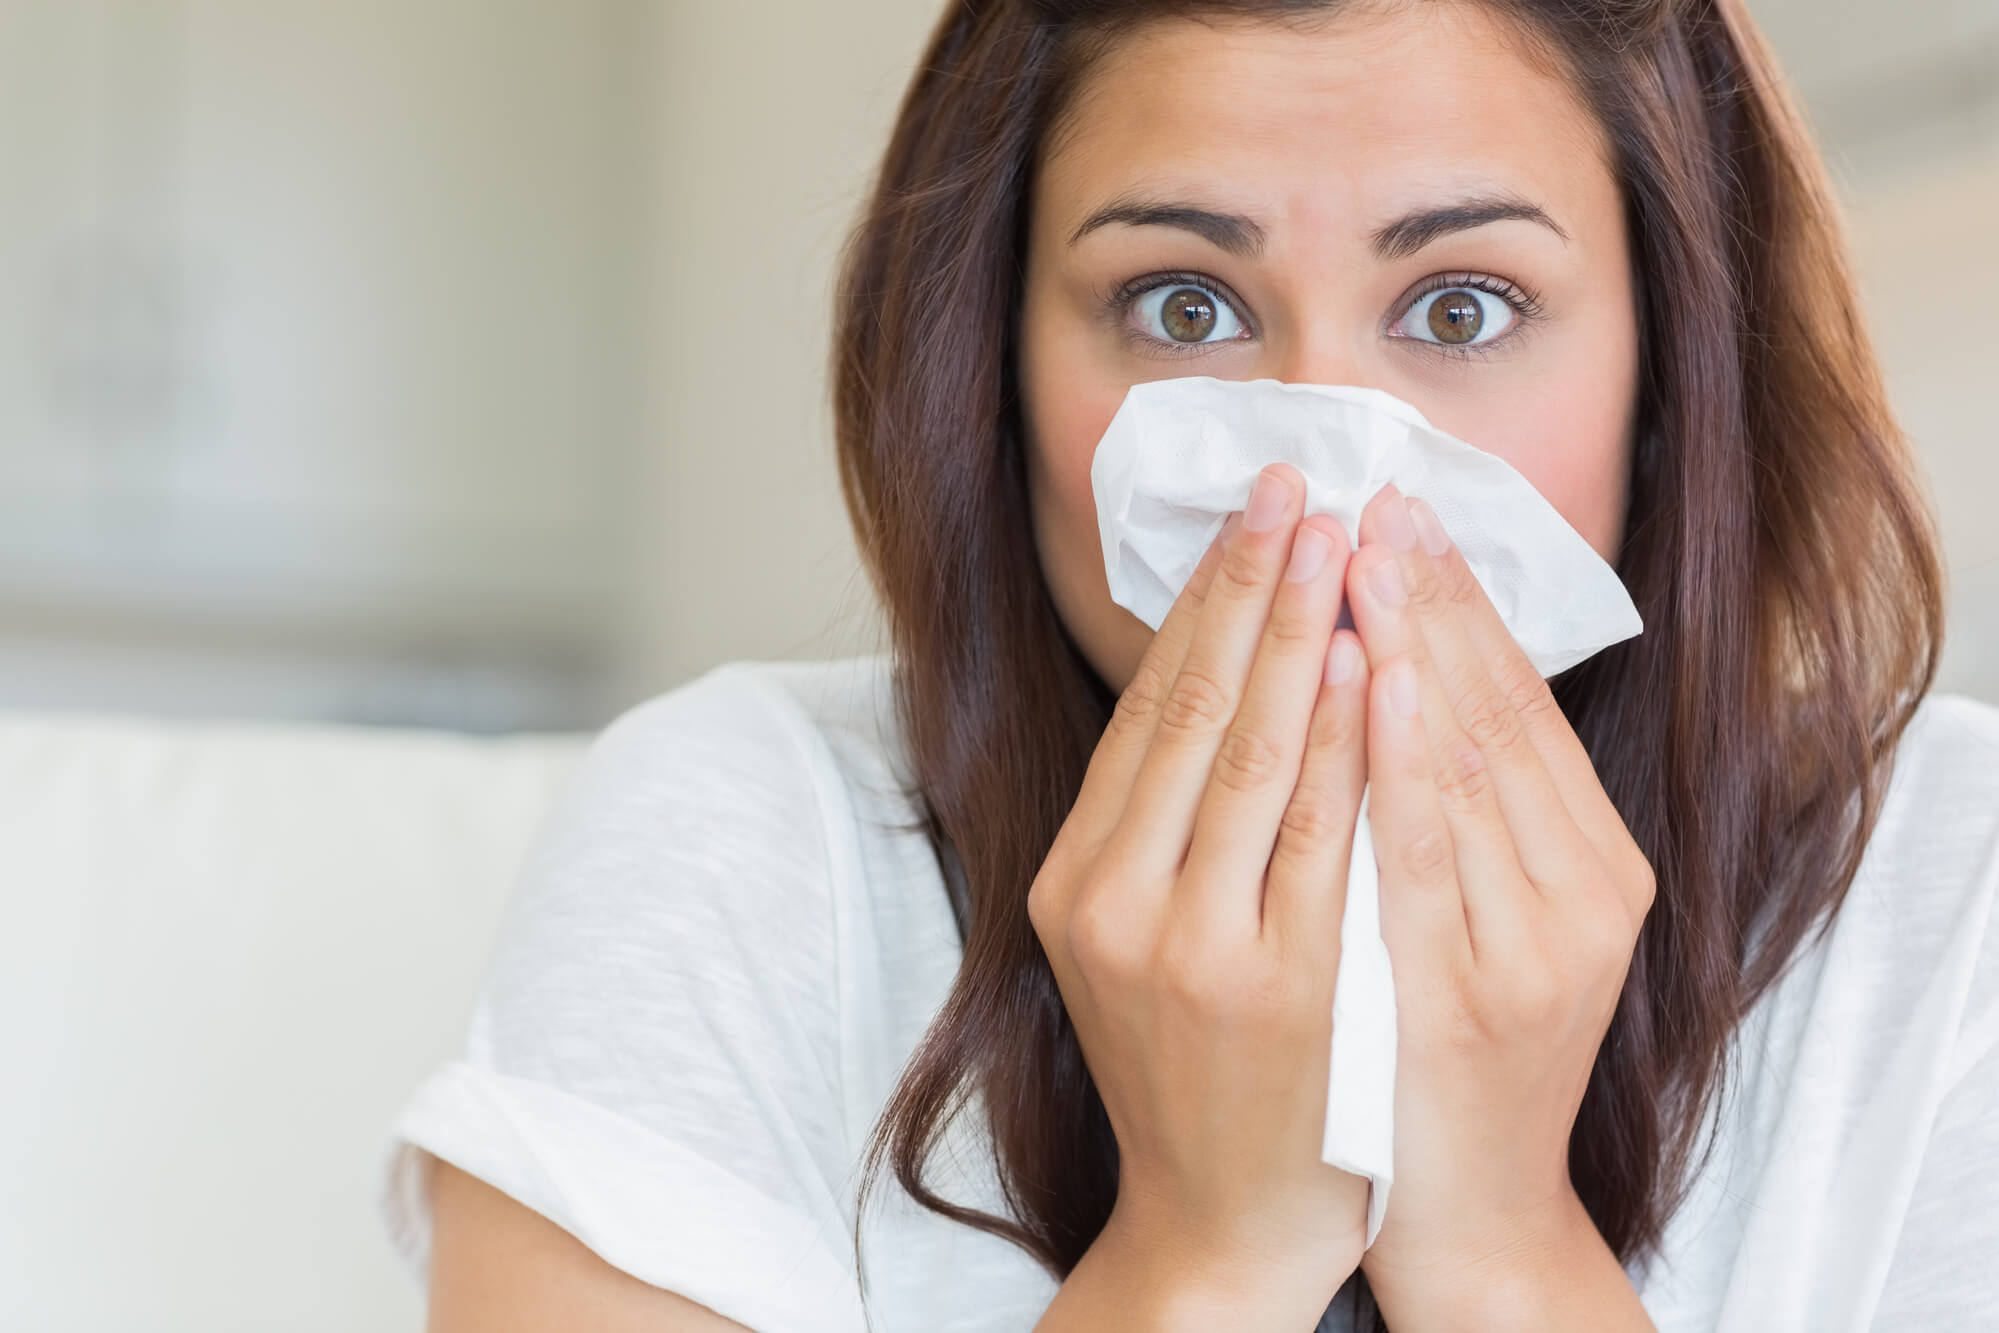 woman sneezing into tissue from allergies